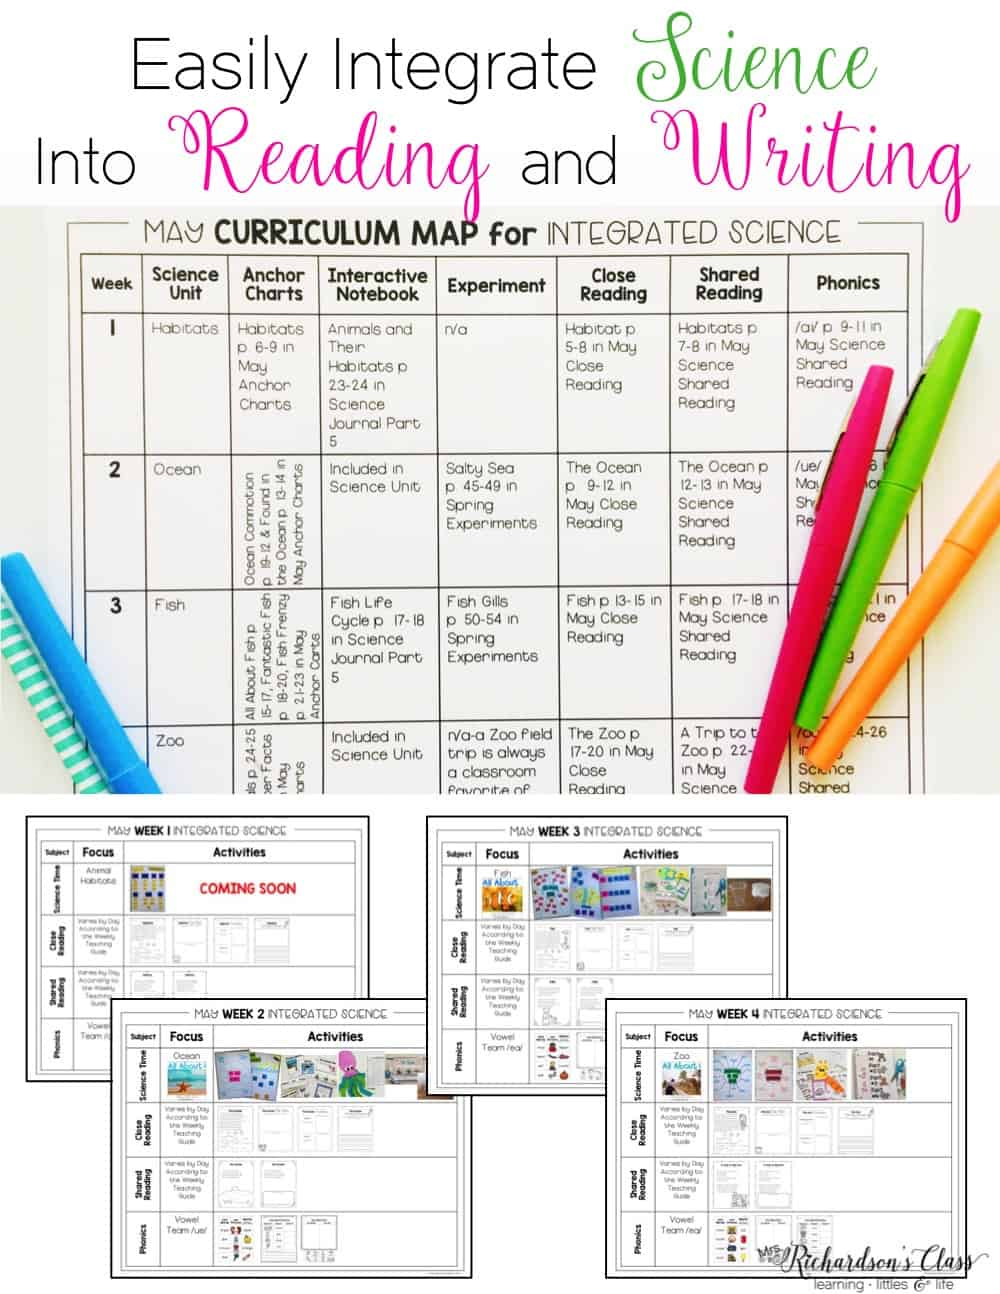 Integrating science into reading and writing is a breeze once you see how this teacher does it! She provides a detailed look into how she squeezes it all in!